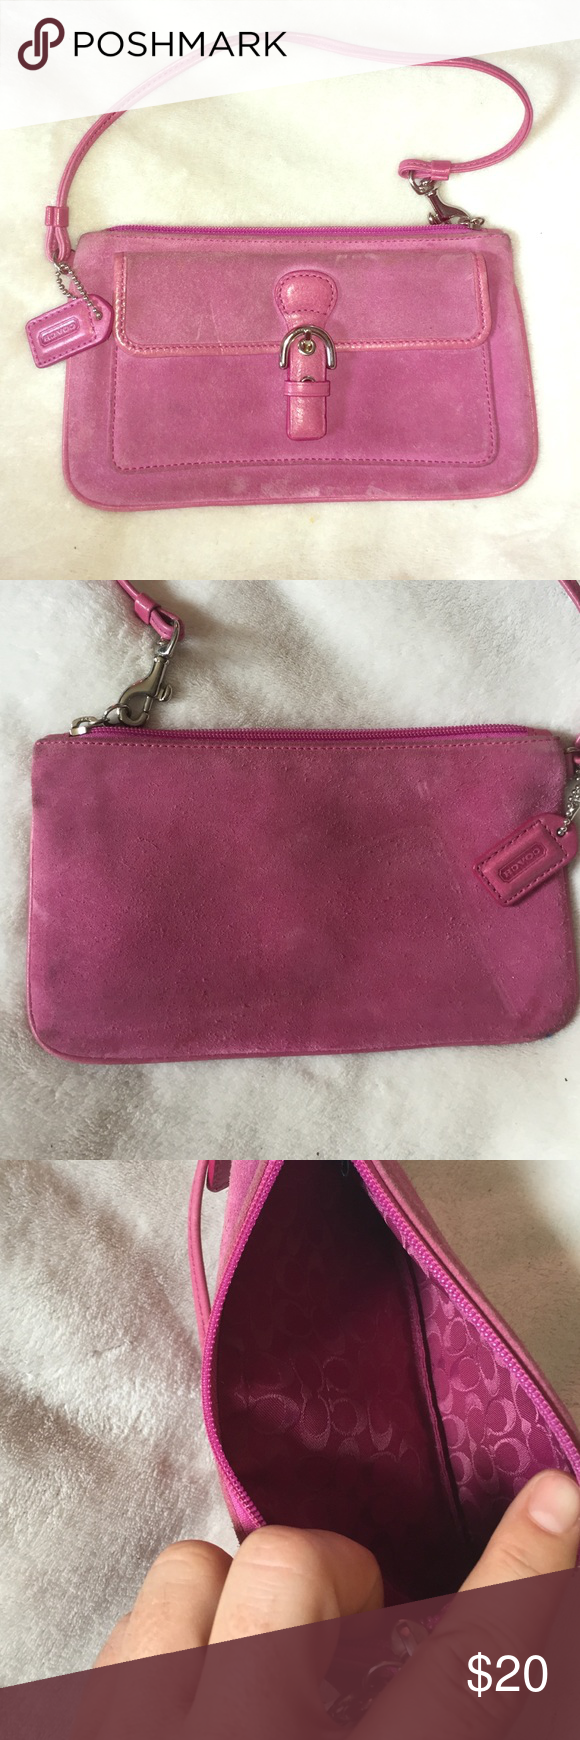 Coach pink wristlet Coach (authentic) wristlet. Well loved and used.  Still has life left for someone🎉🛍 thanks for shopping Coach Bags Clutches & Wristlets